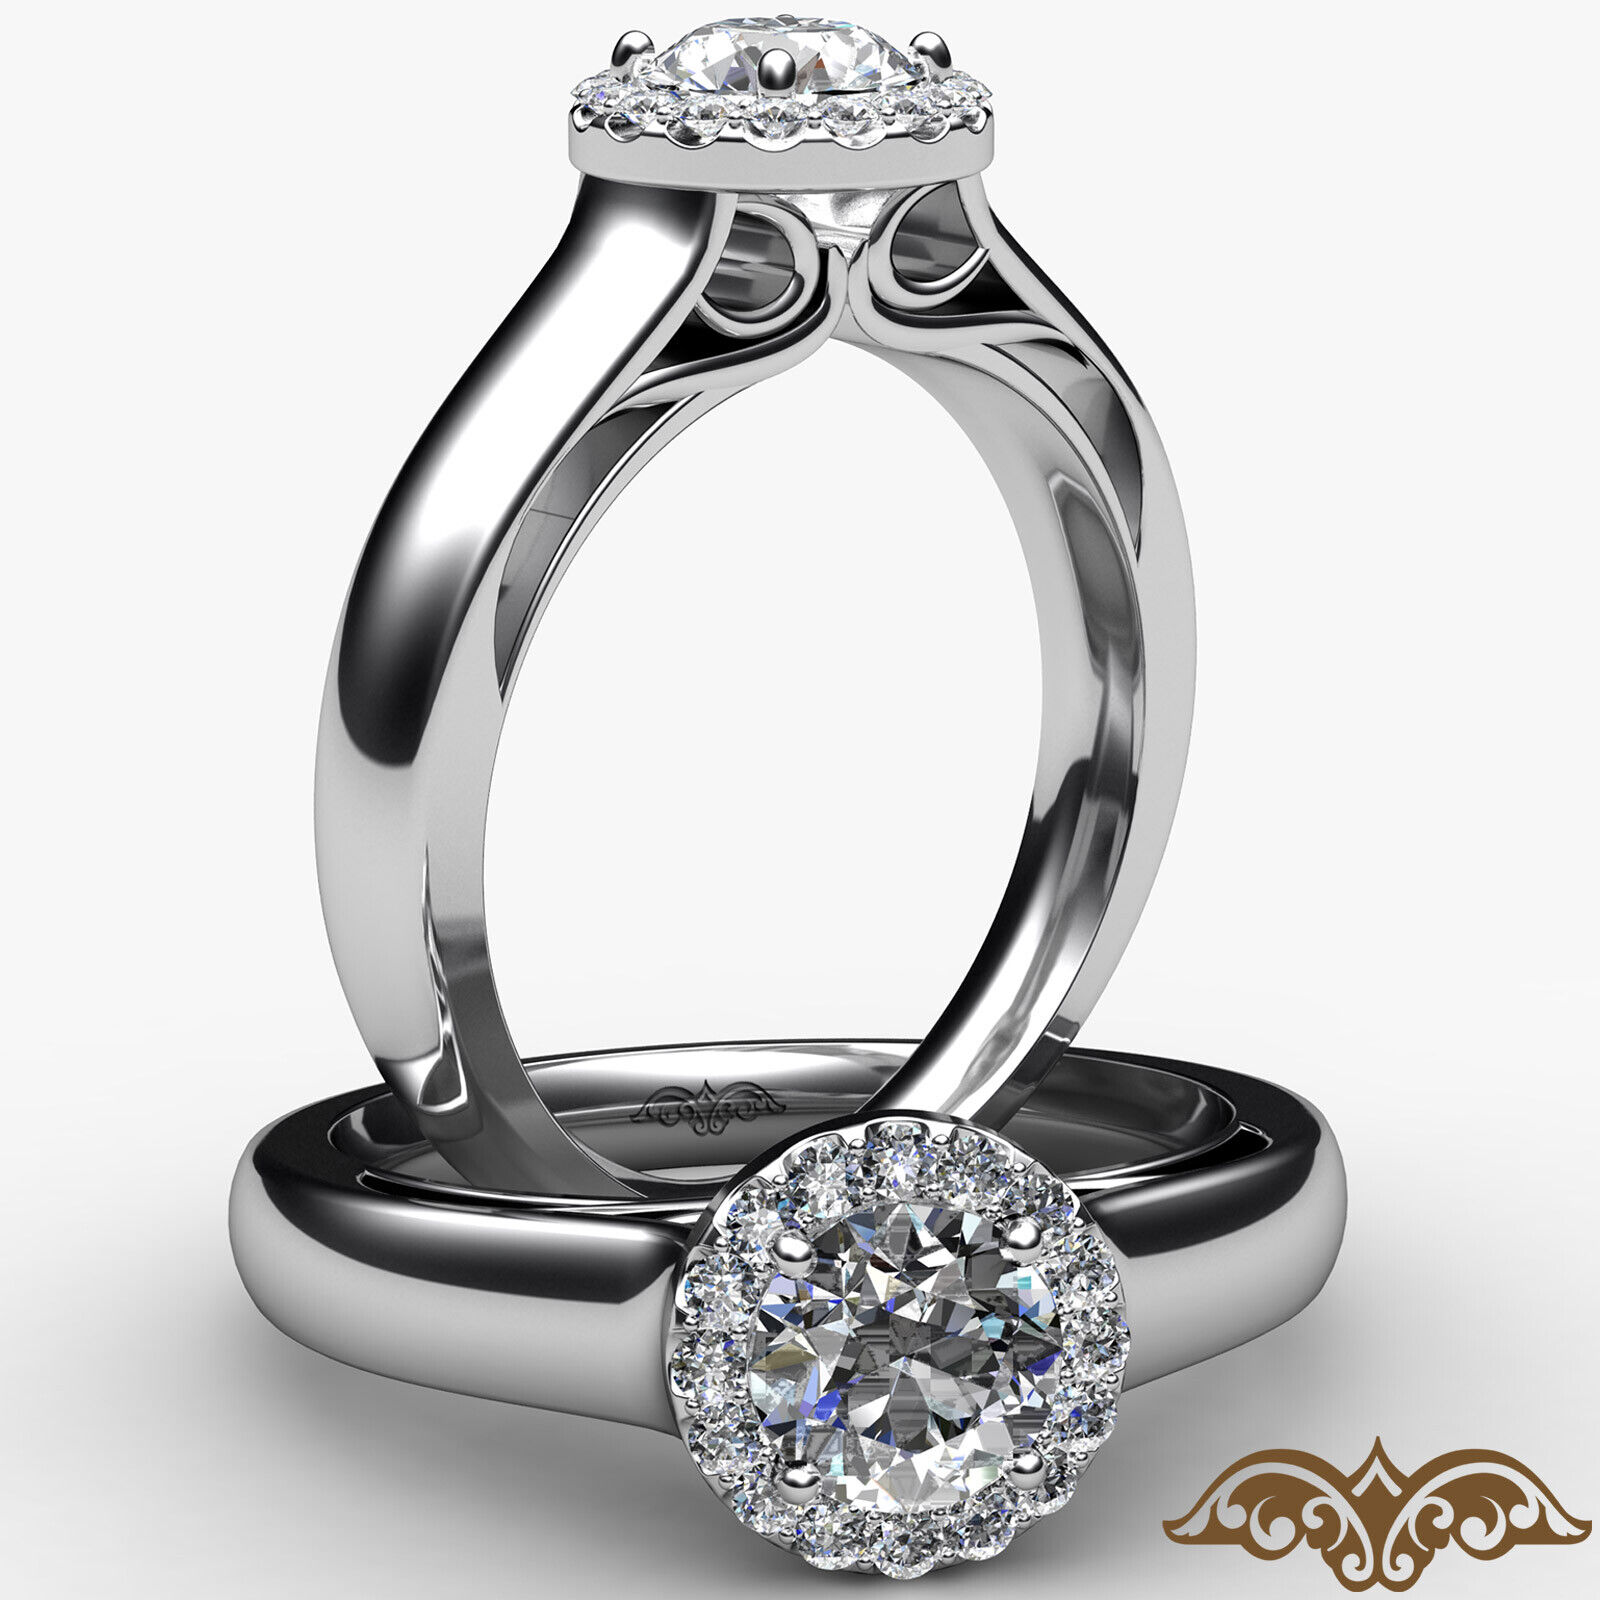 0.95ctw Tapered Cathedral Halo Round Diamond Engagement Ring GIA F-VVS1 W Gold